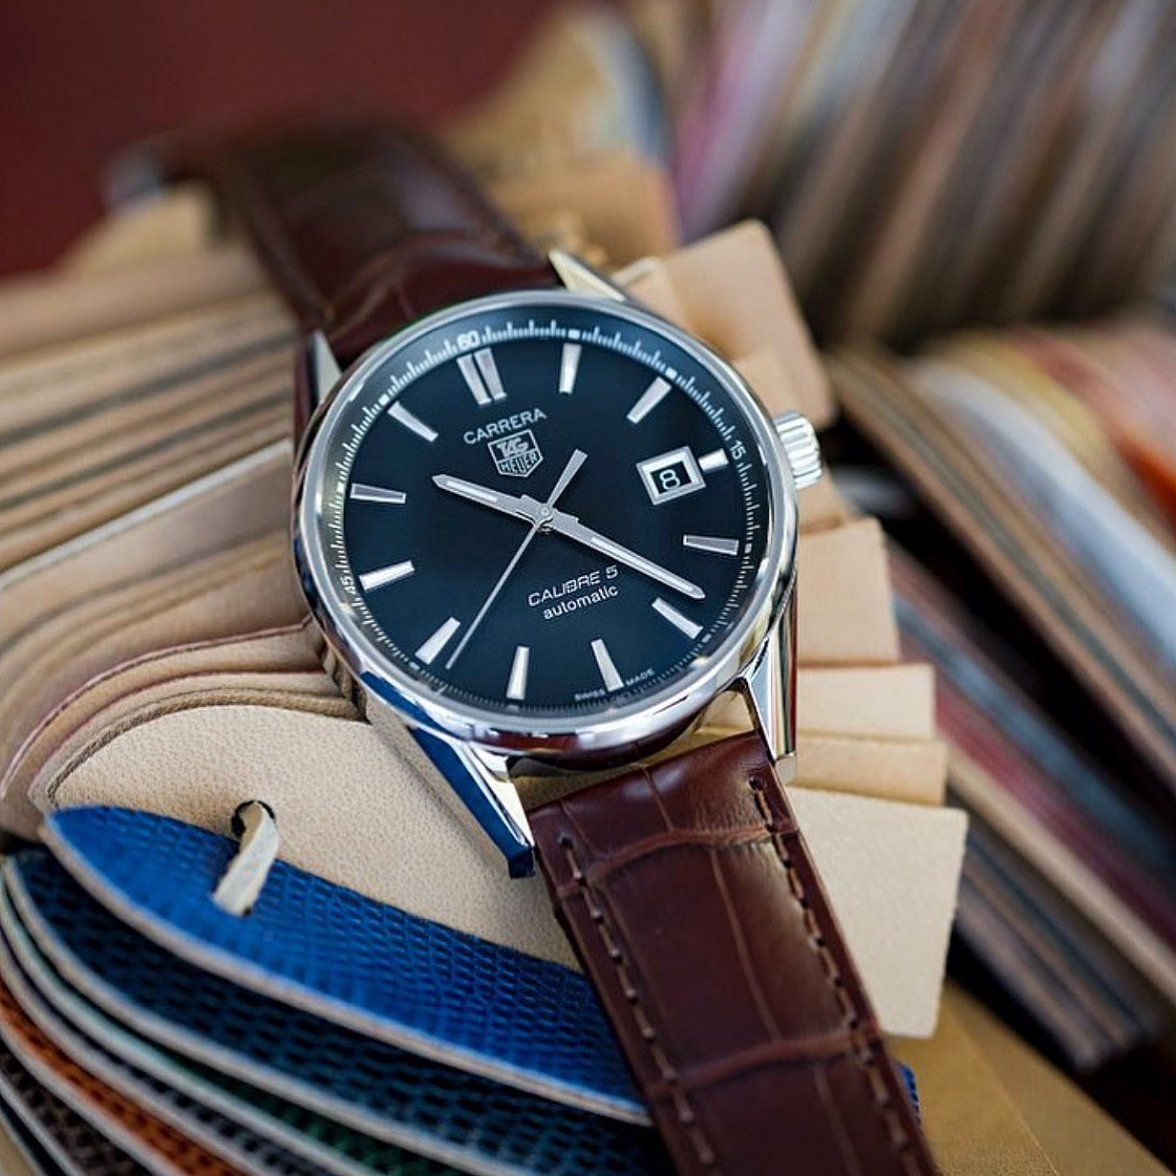 TAG Heuer Carrera Calibre 5 by @thewatchobsession # ...